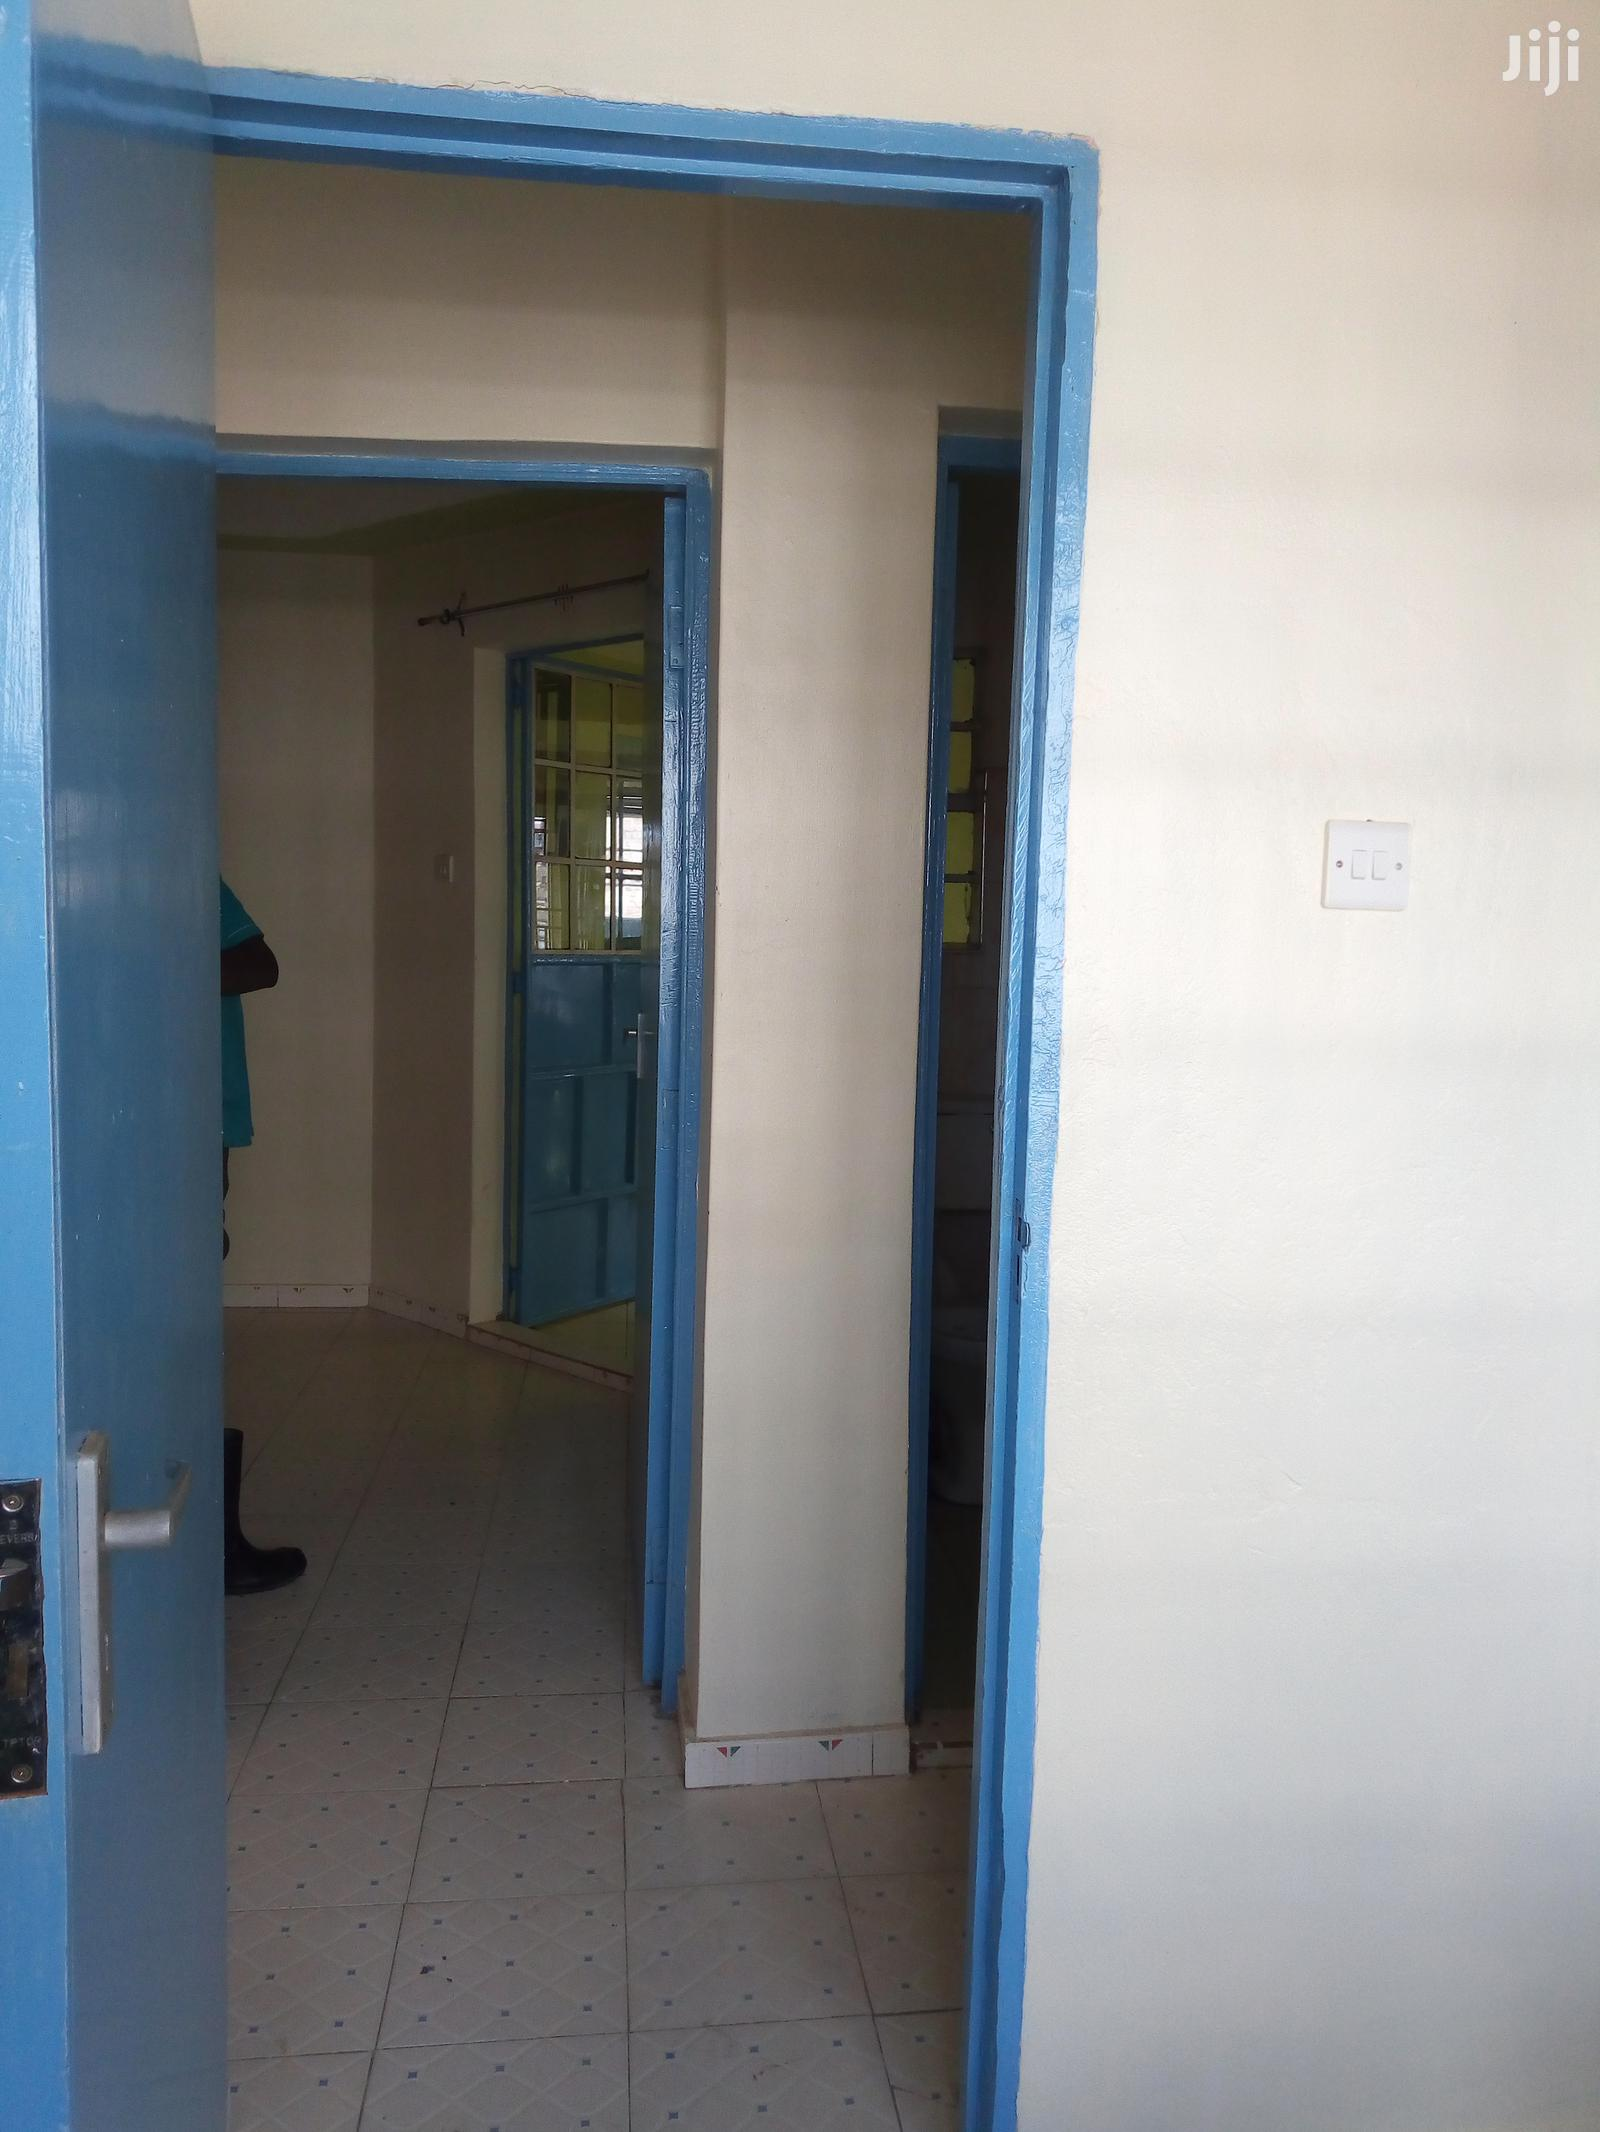 One Bedroomed House For Rent | Houses & Apartments For Rent for sale in Kahawa, Nairobi, Kenya